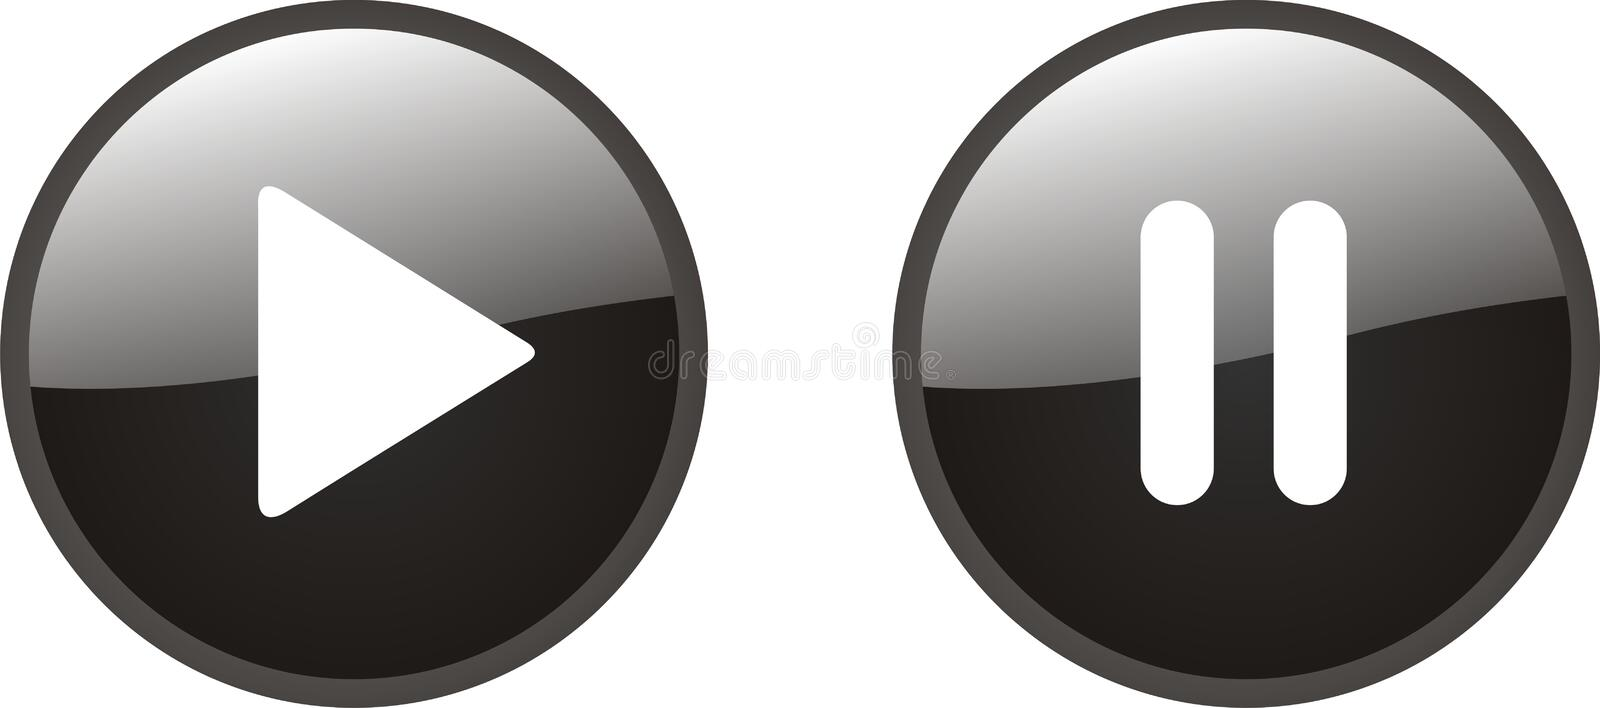 Play and pause buttons vector illustration